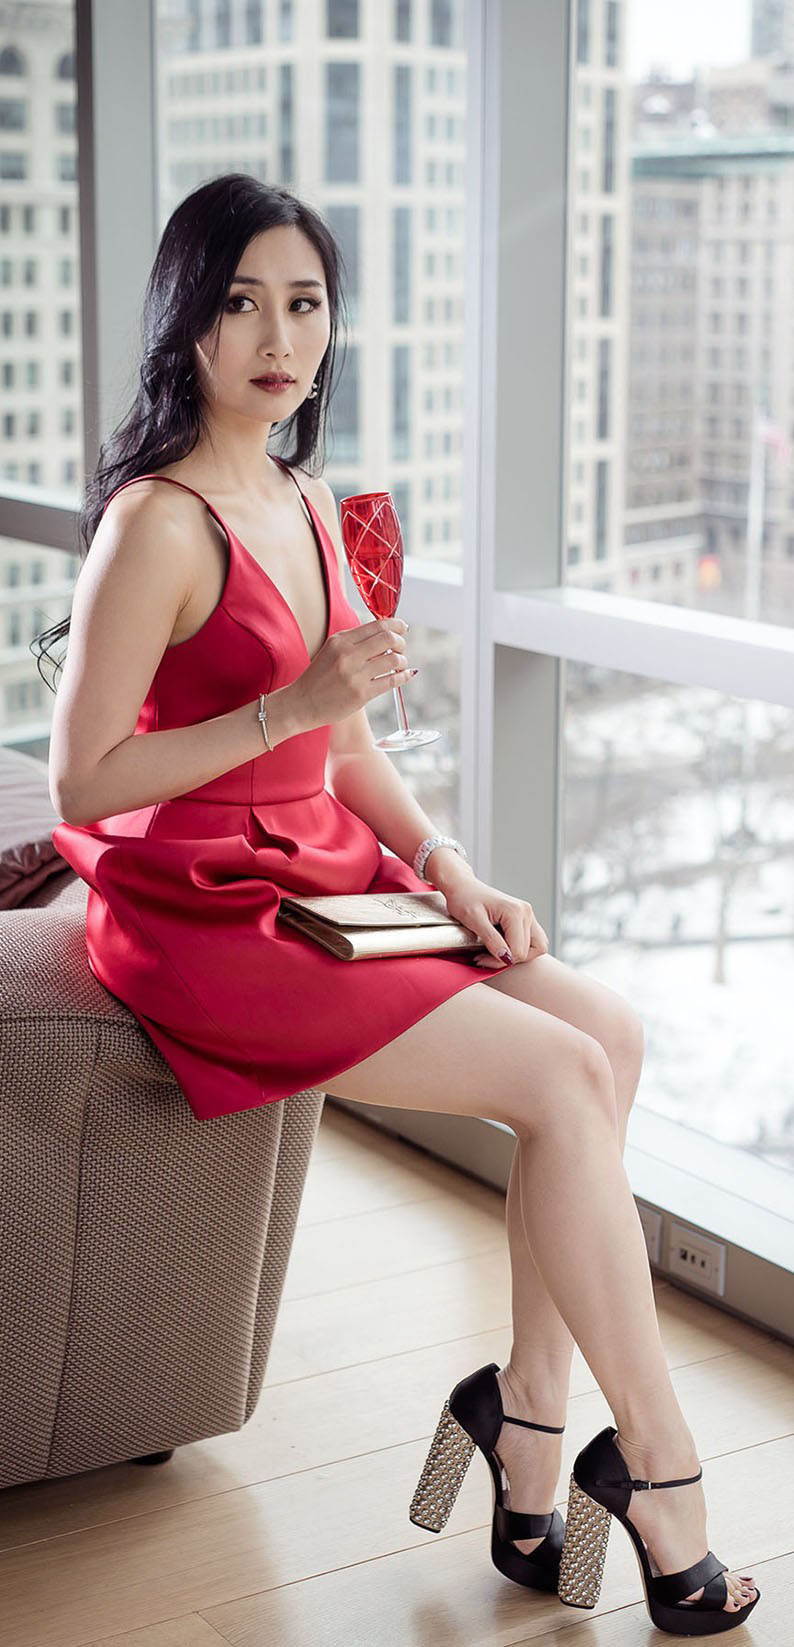 The Red Dress Effect - Why I Wear Red